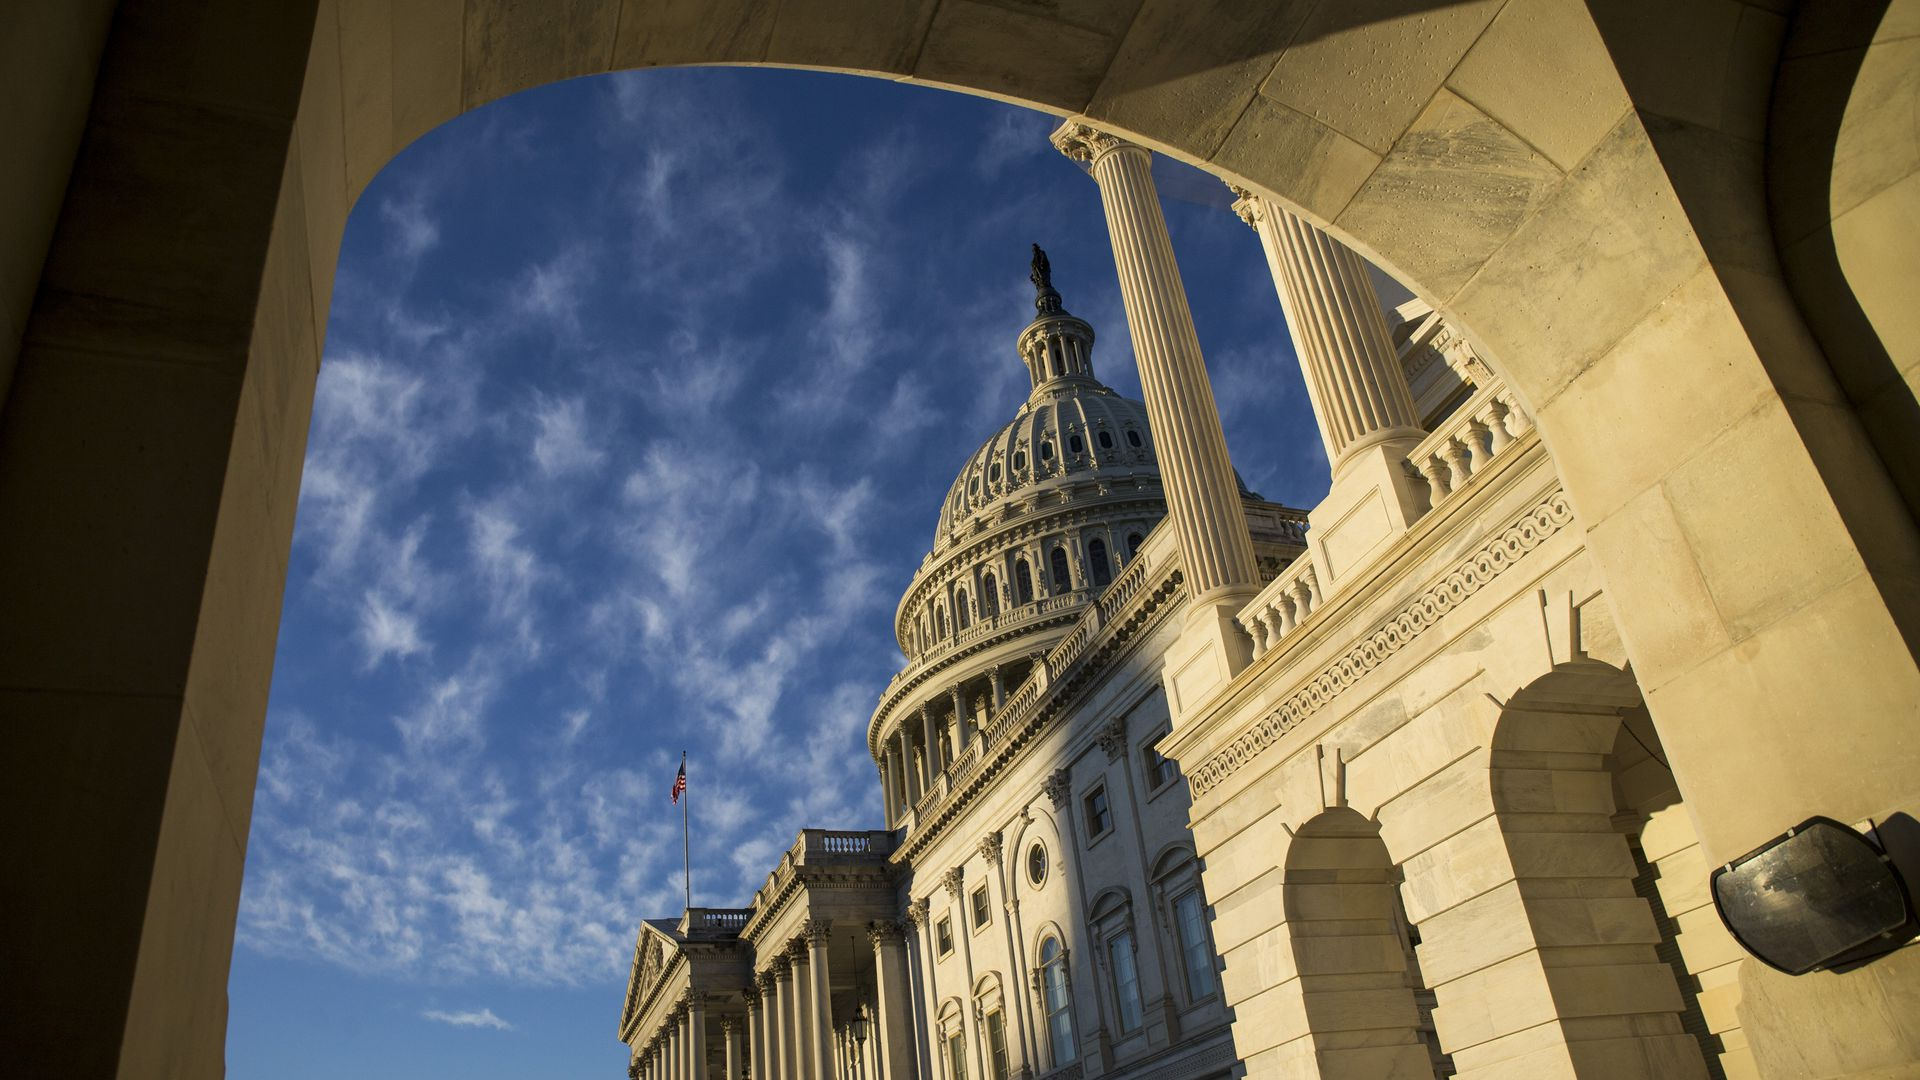 The exterior of the Capitol dome pictured through an archway